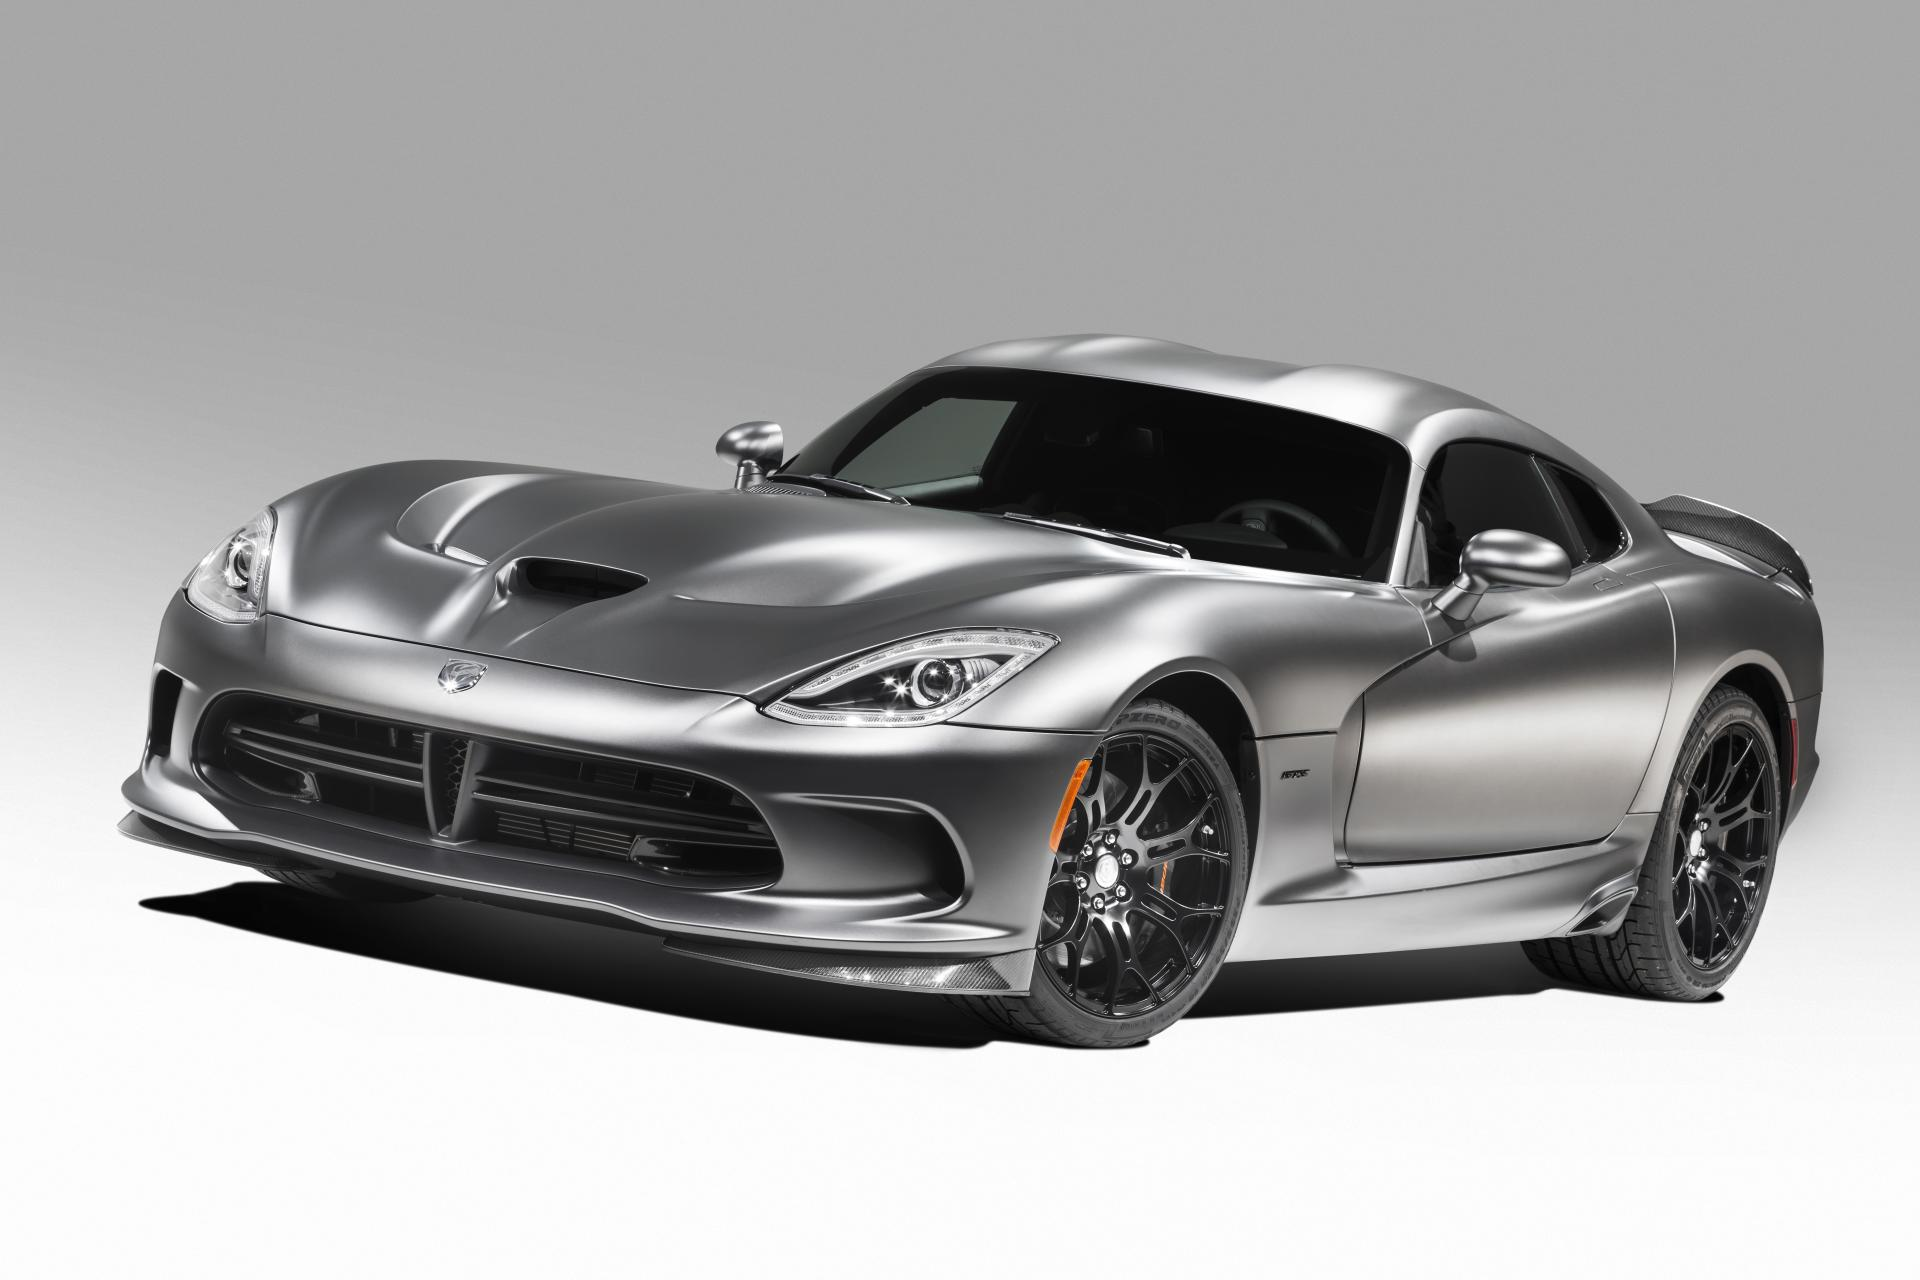 2015 Dodge Barracuda >> 2014 Dodge Viper SRT Anodized Carbon Special Edition GTS News and Information